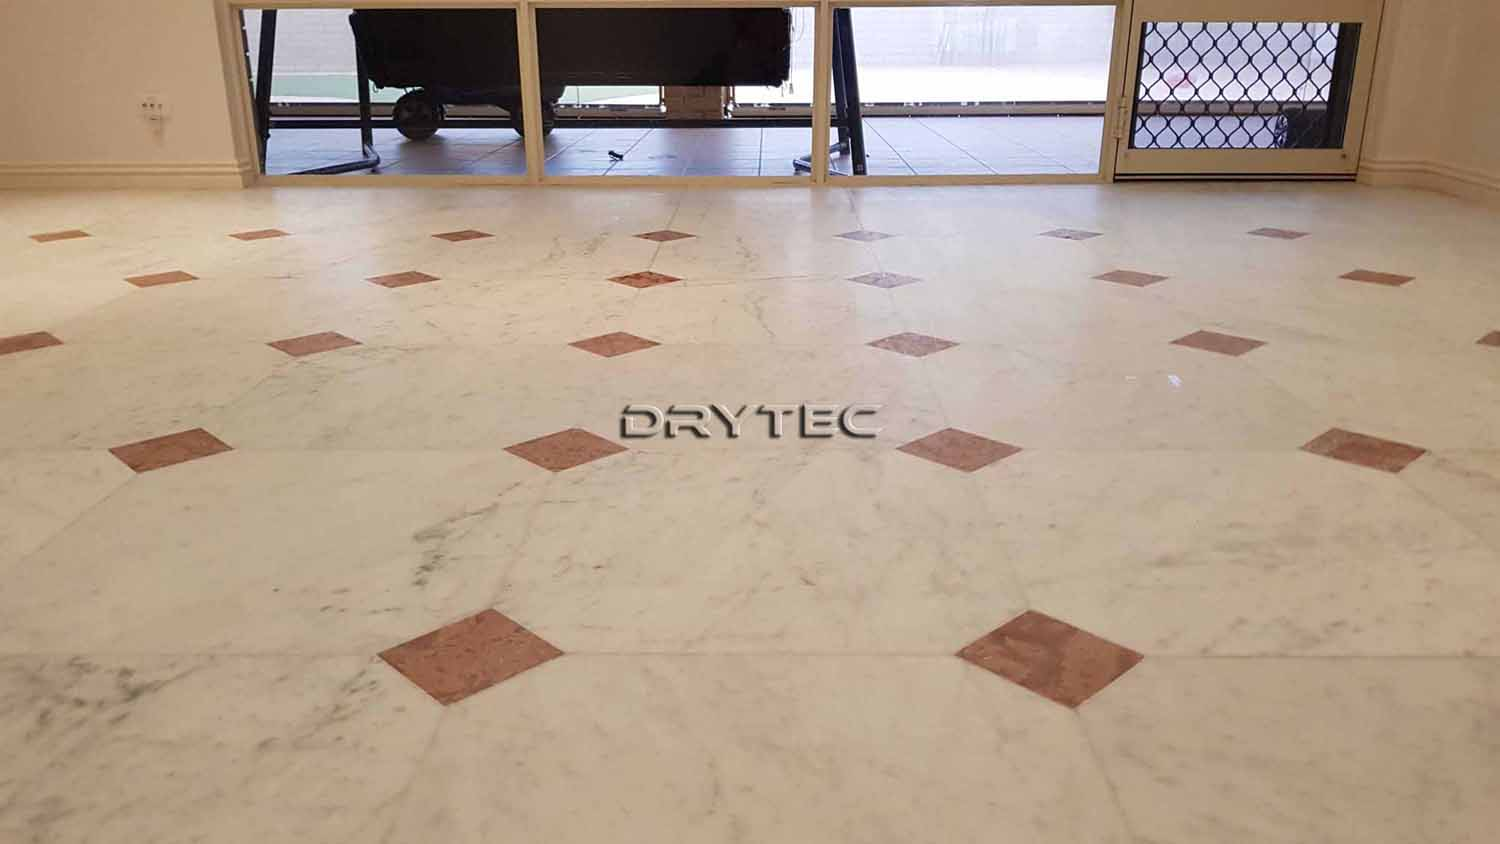 Marble Floor Tiles Restoration-Grinding-Honing-Polishing-Cleaning and Sealing Service in Perth